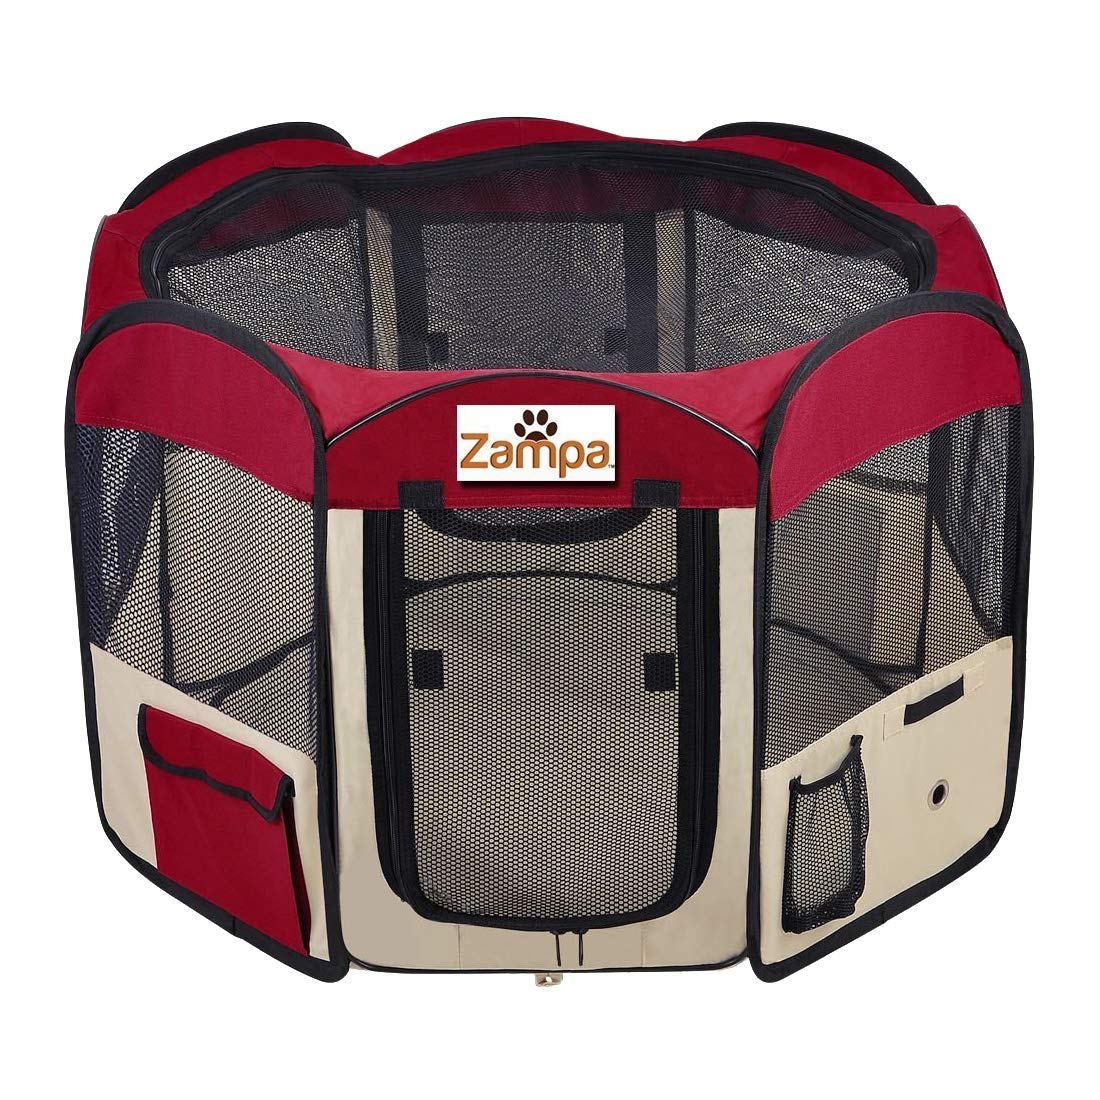 Zampa Portable Foldable Pet playpen Exercise Pen Kennel + Carrying Case For Larges Dogs Small Puppies /Cats | Indoor / Outdoor Use | Water resistant by Zampa